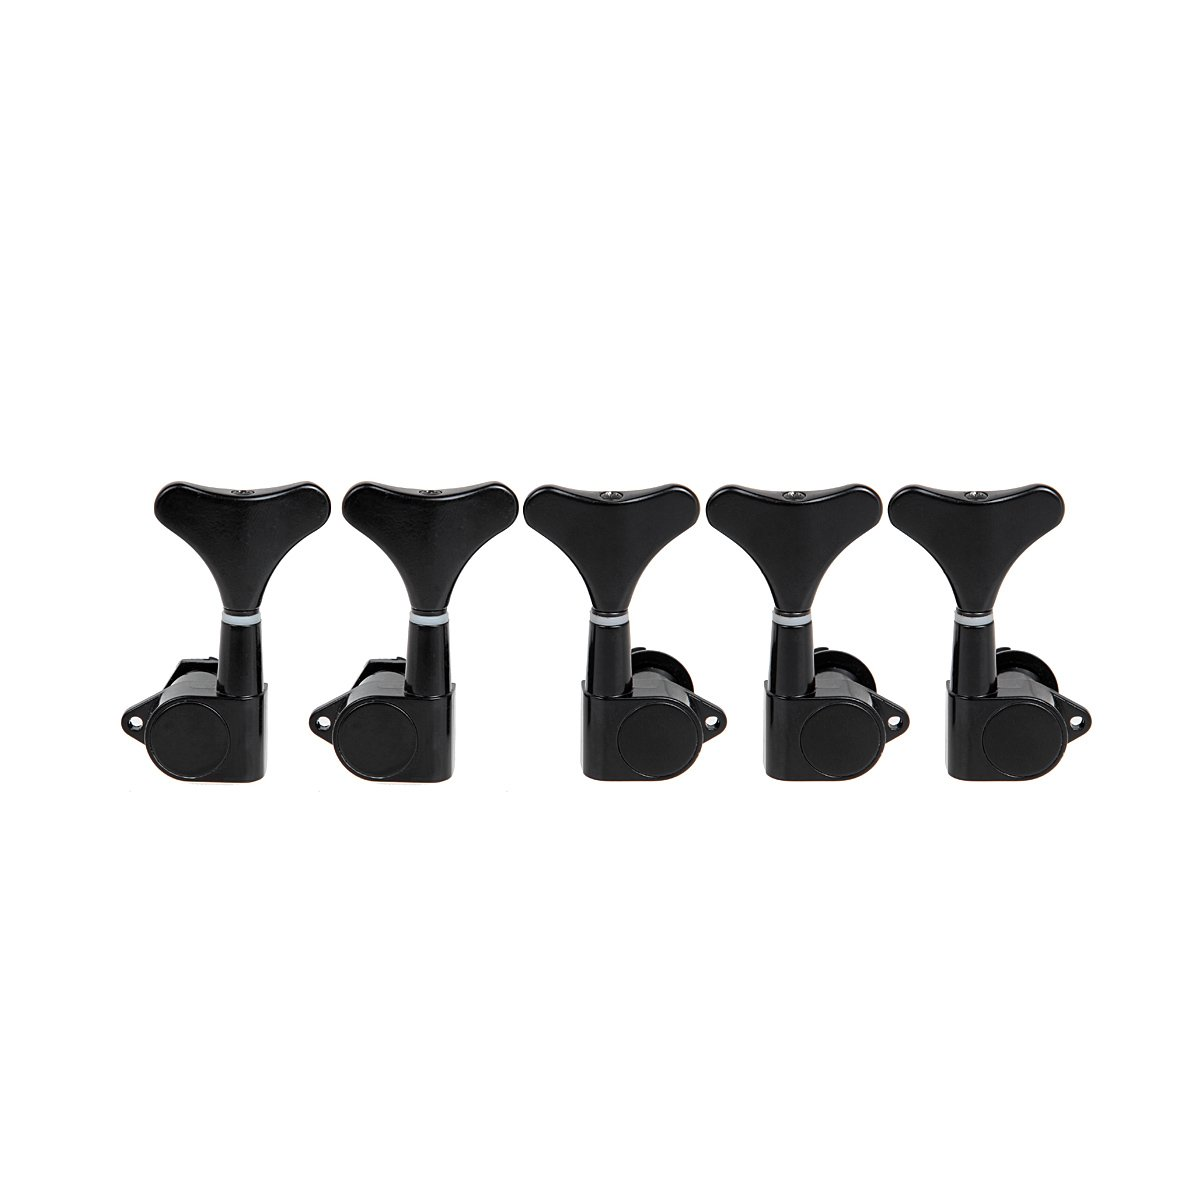 Pack of 5pcs Bass Tuning Pegs Black Sealed Machine Head for 5 String Bass 2L3R